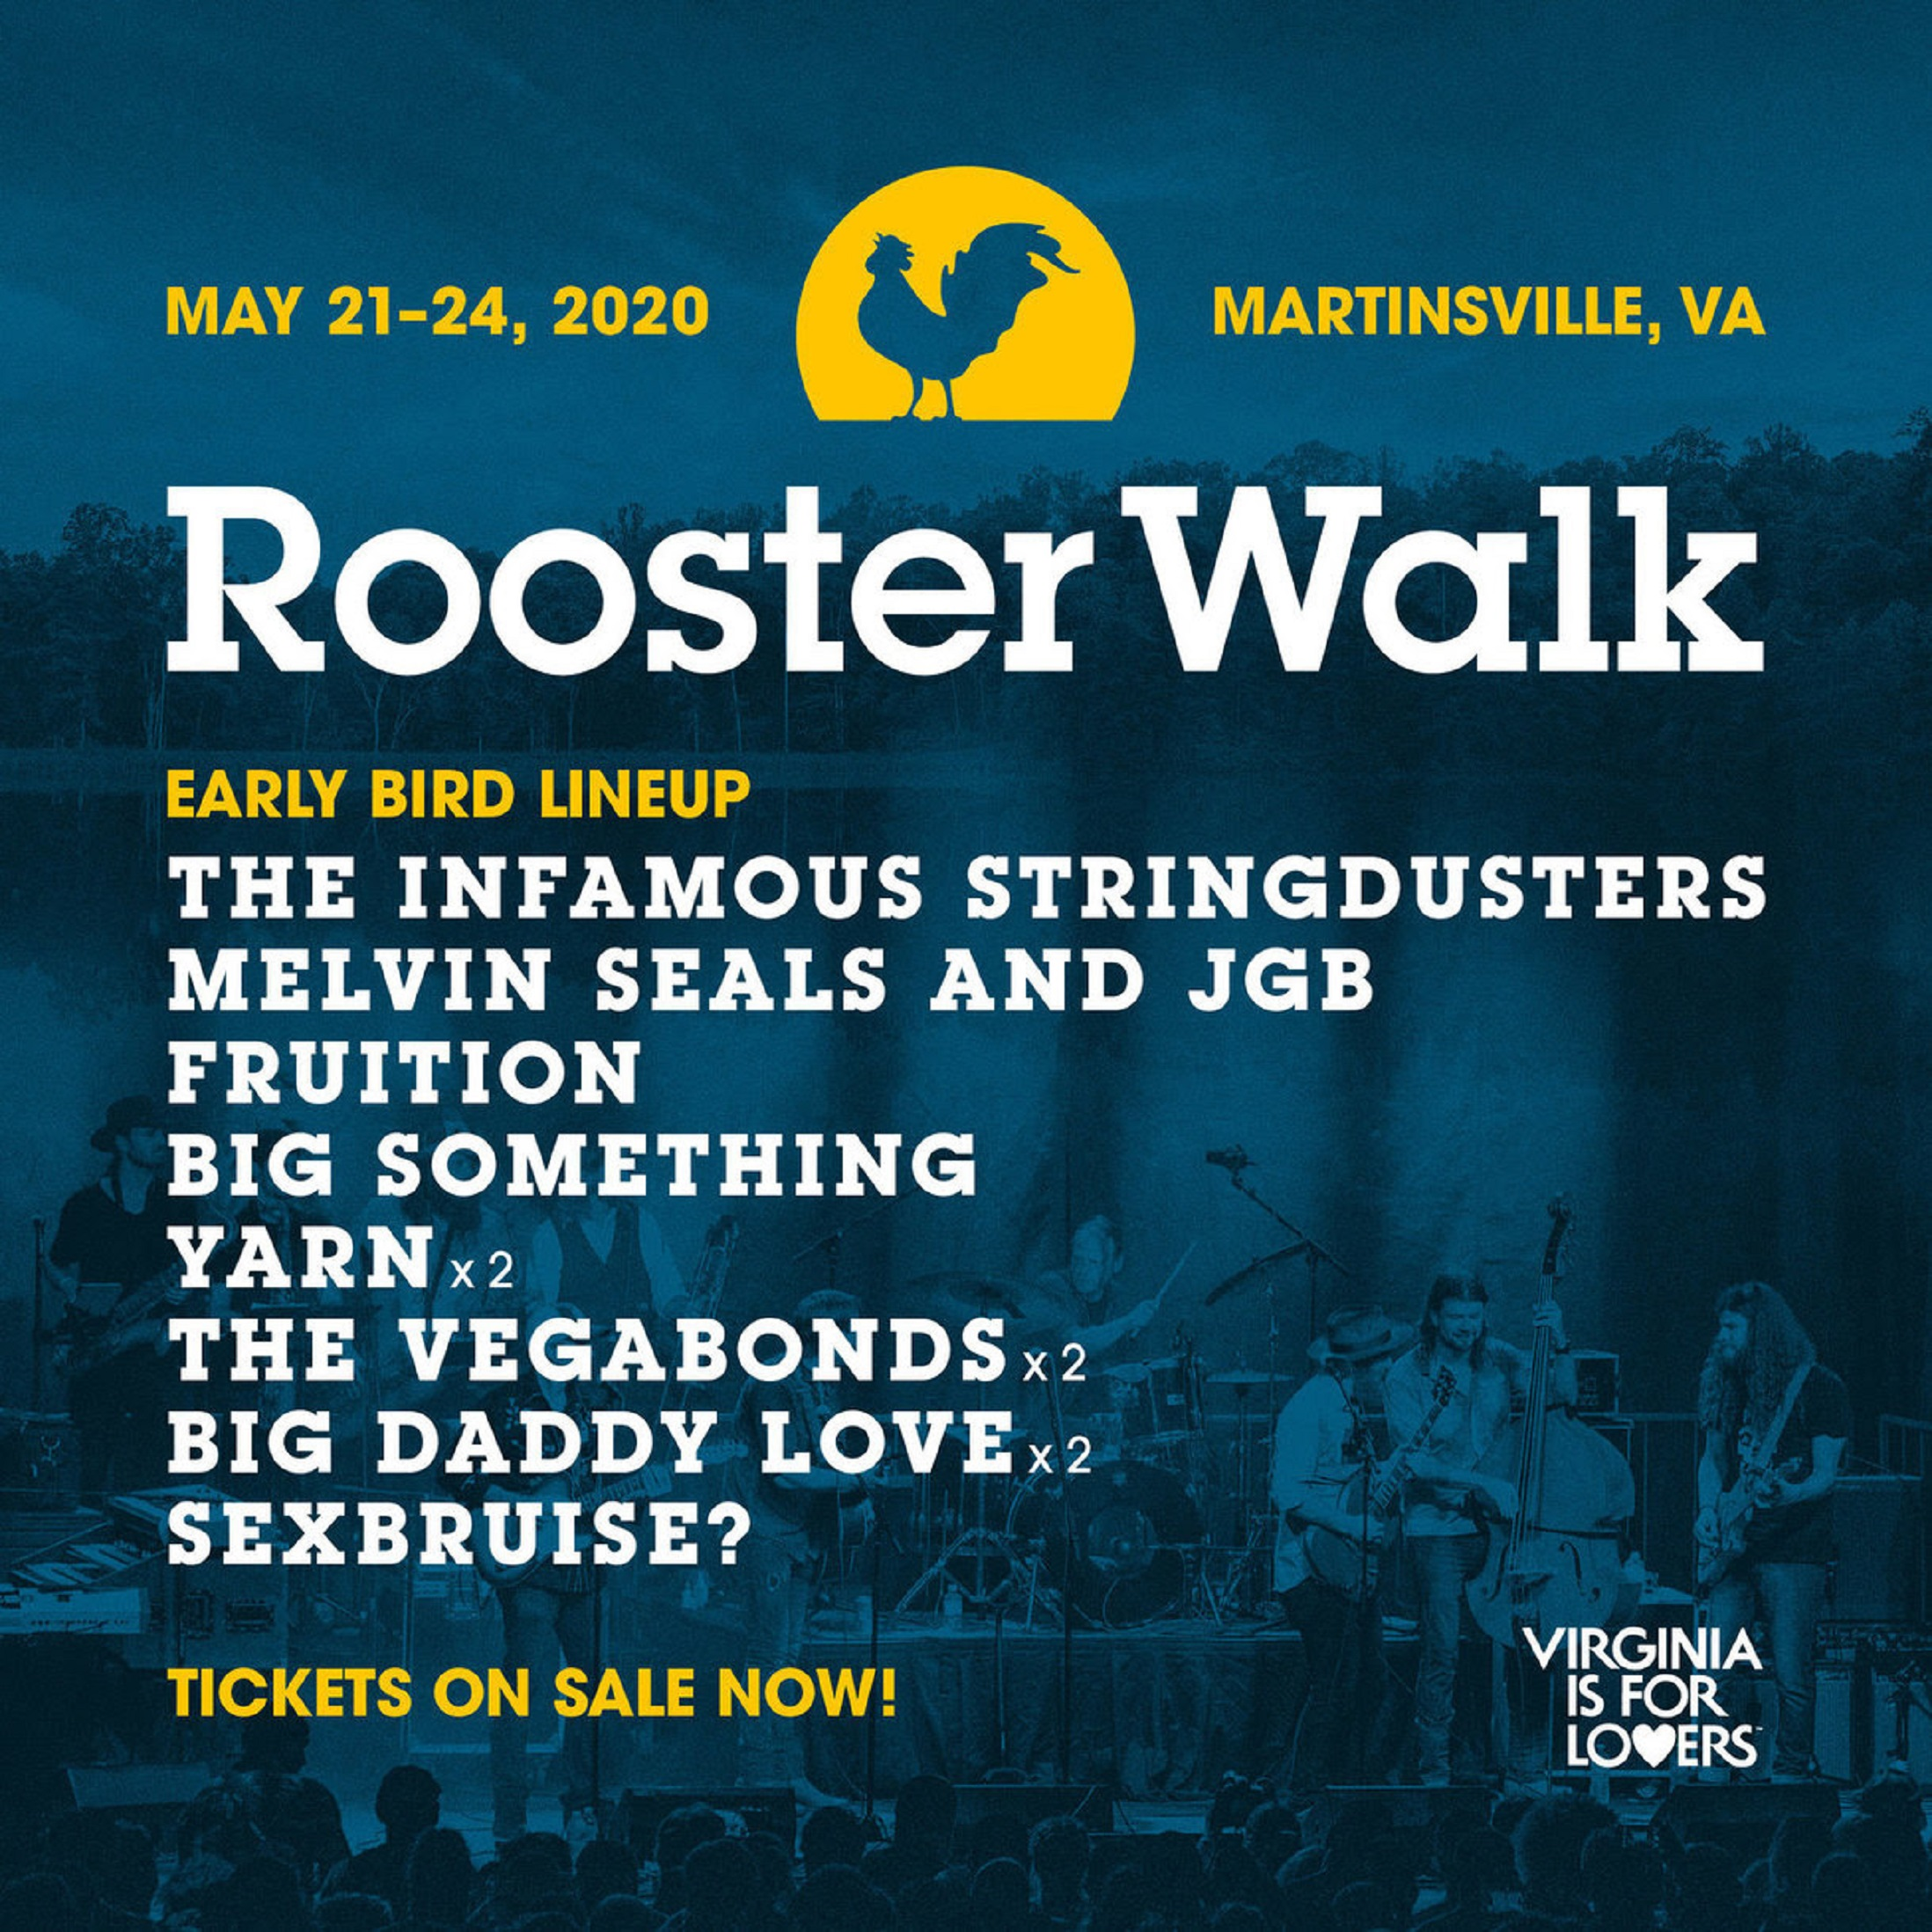 Rooster Walk 2020